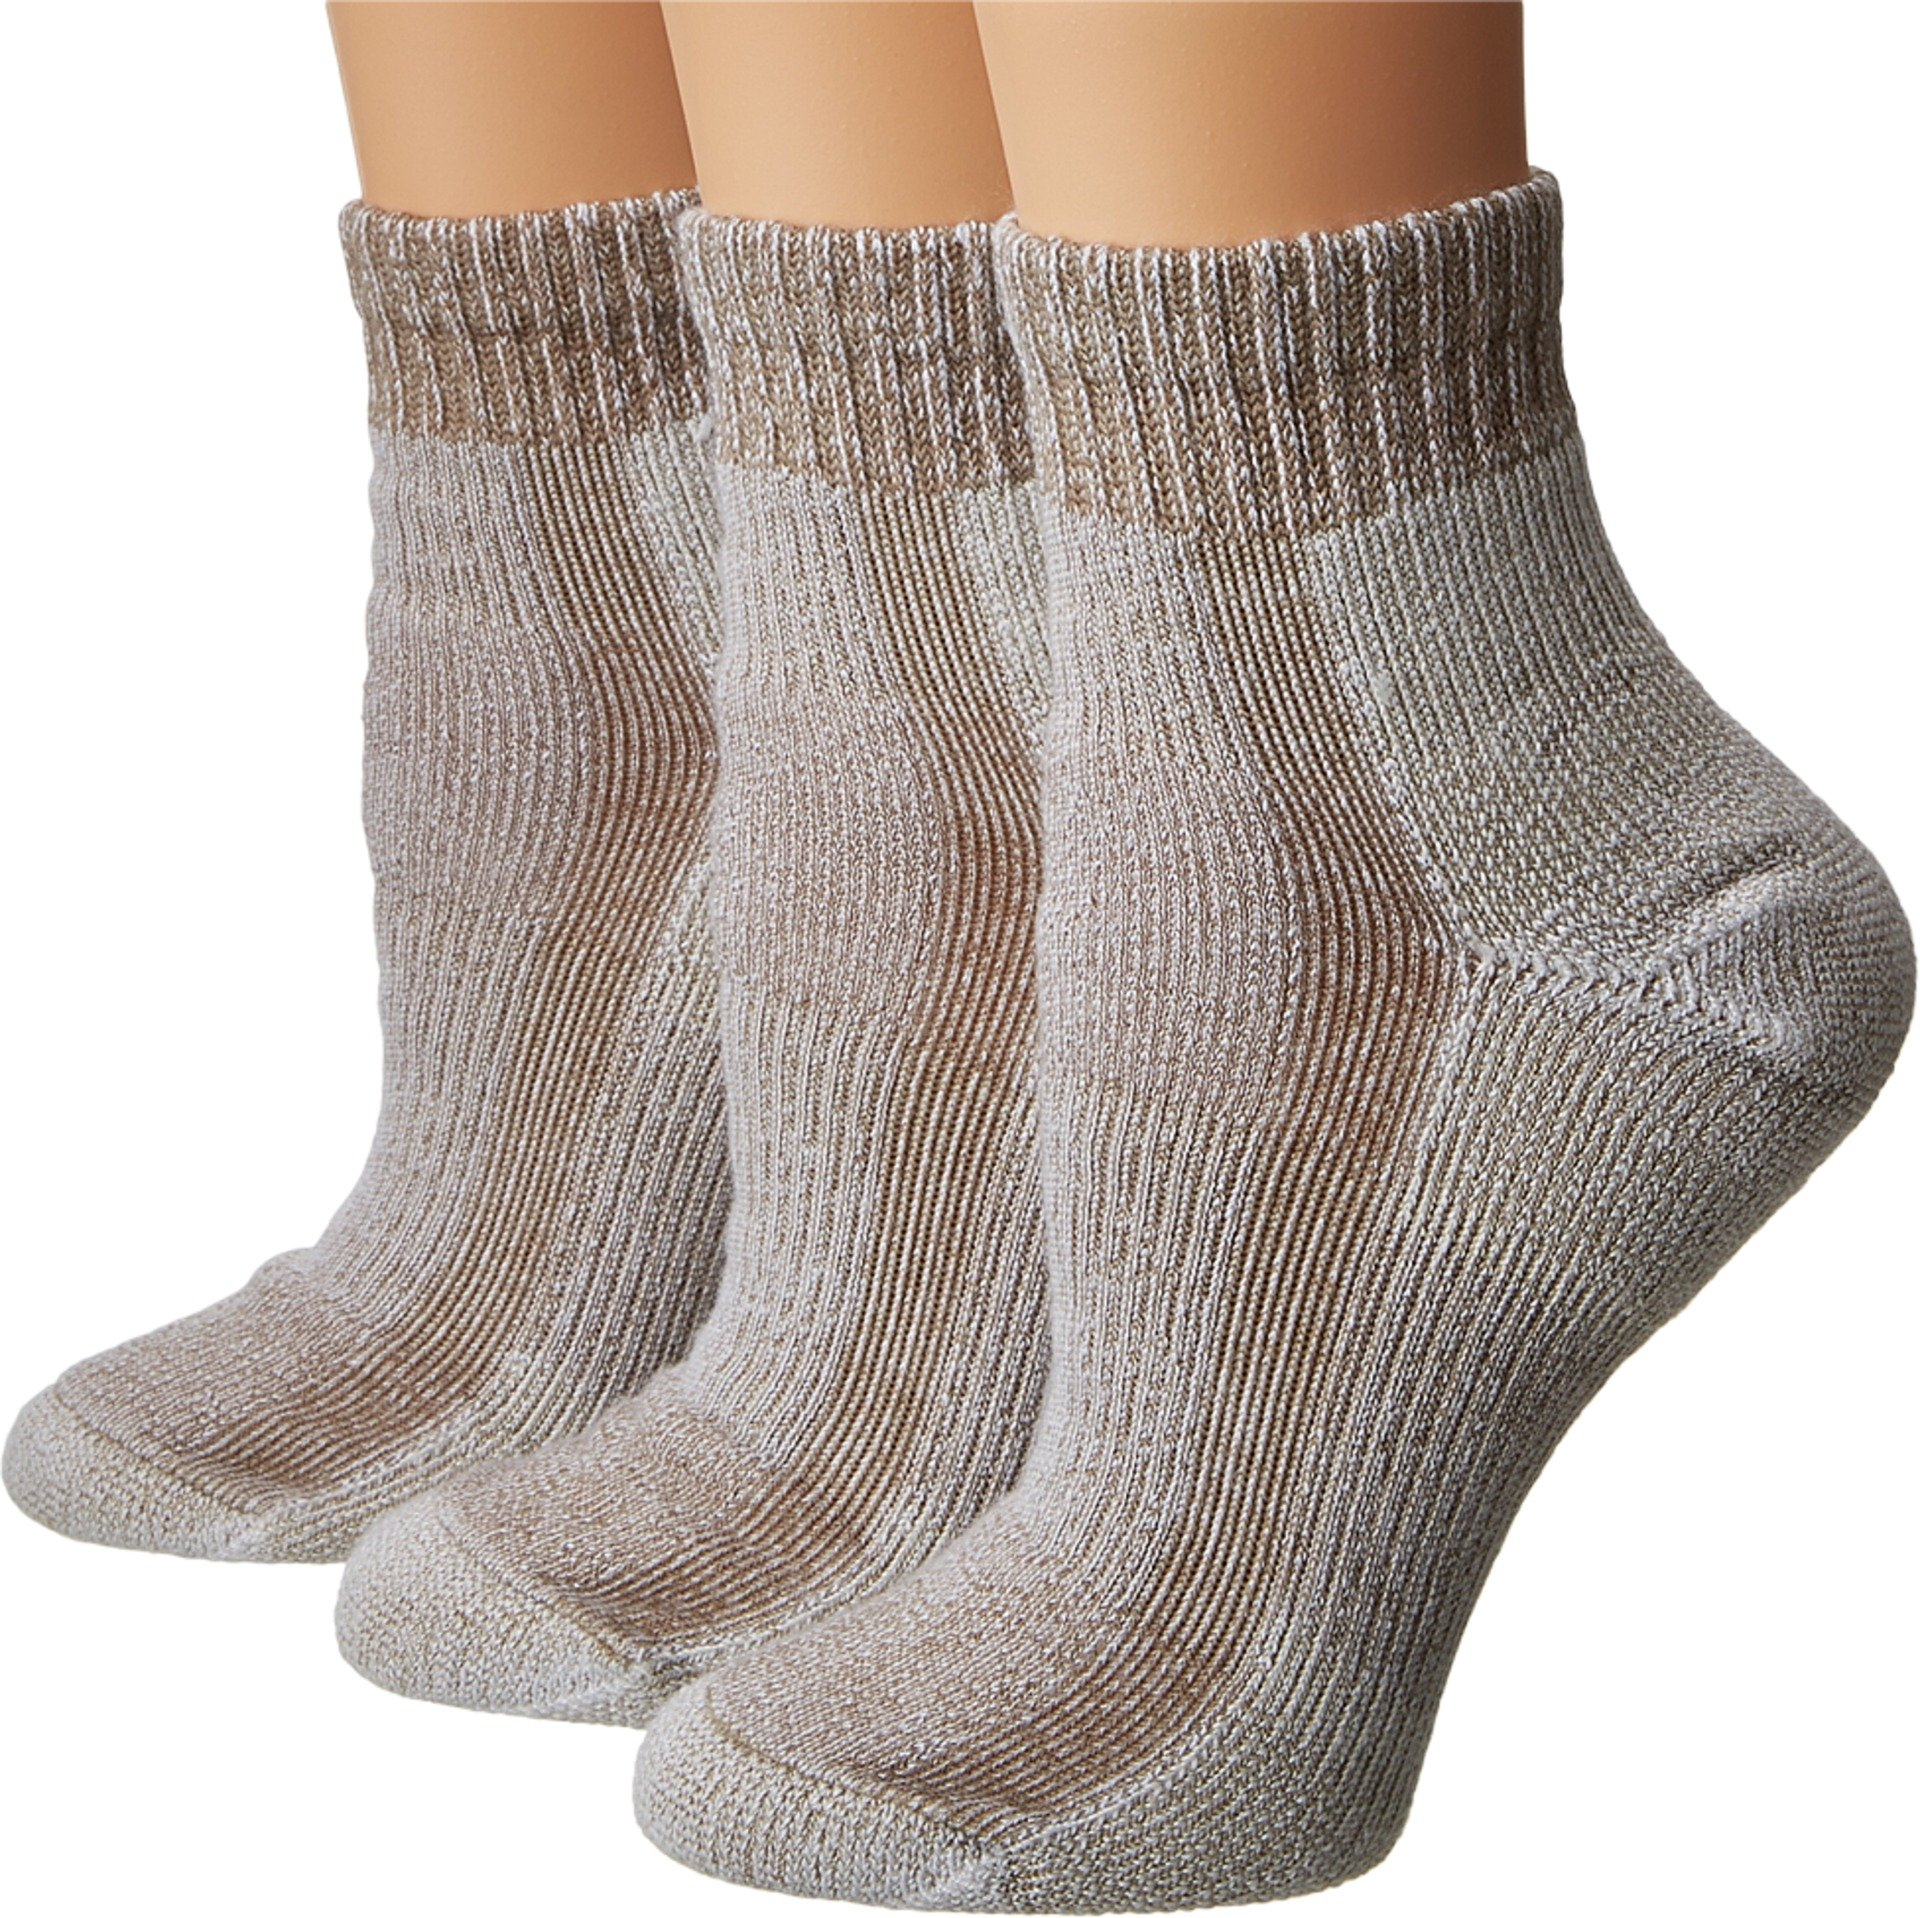 Thorlos Women's Light Hiking Mini Crew Walnut Socks MD (Women's Shoe 7-9) by thorlos